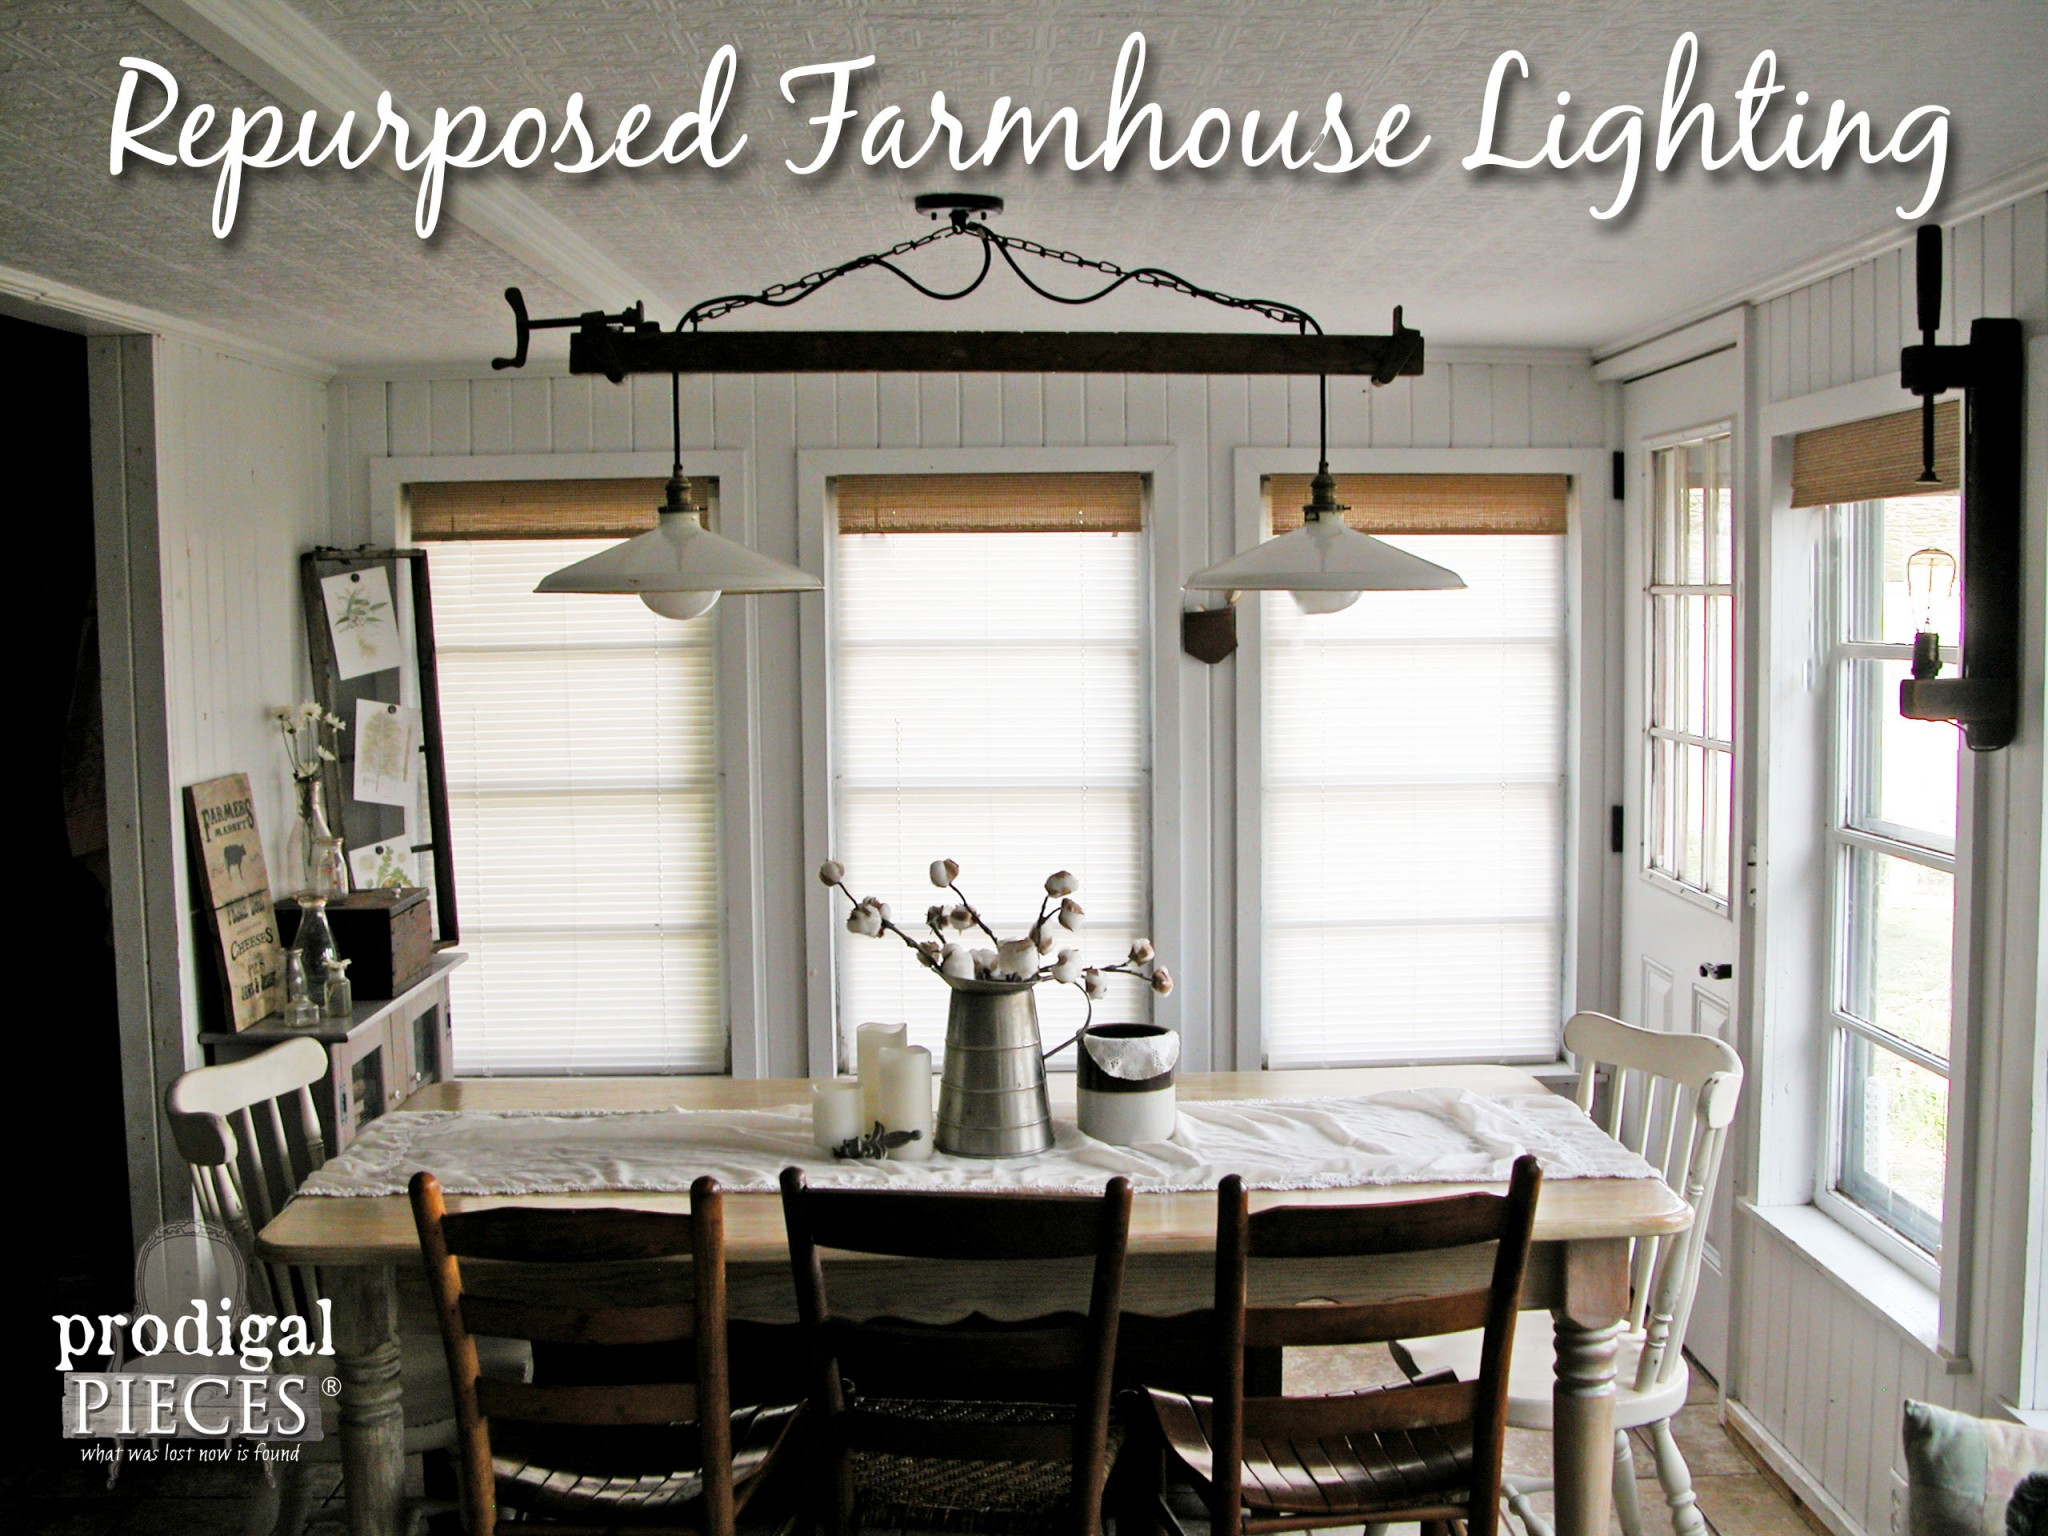 Create Your Own Farmhouse Lighting with this Step-by-Step DIY Tutorial by Prodigal Pieces | prodigalpieces.com